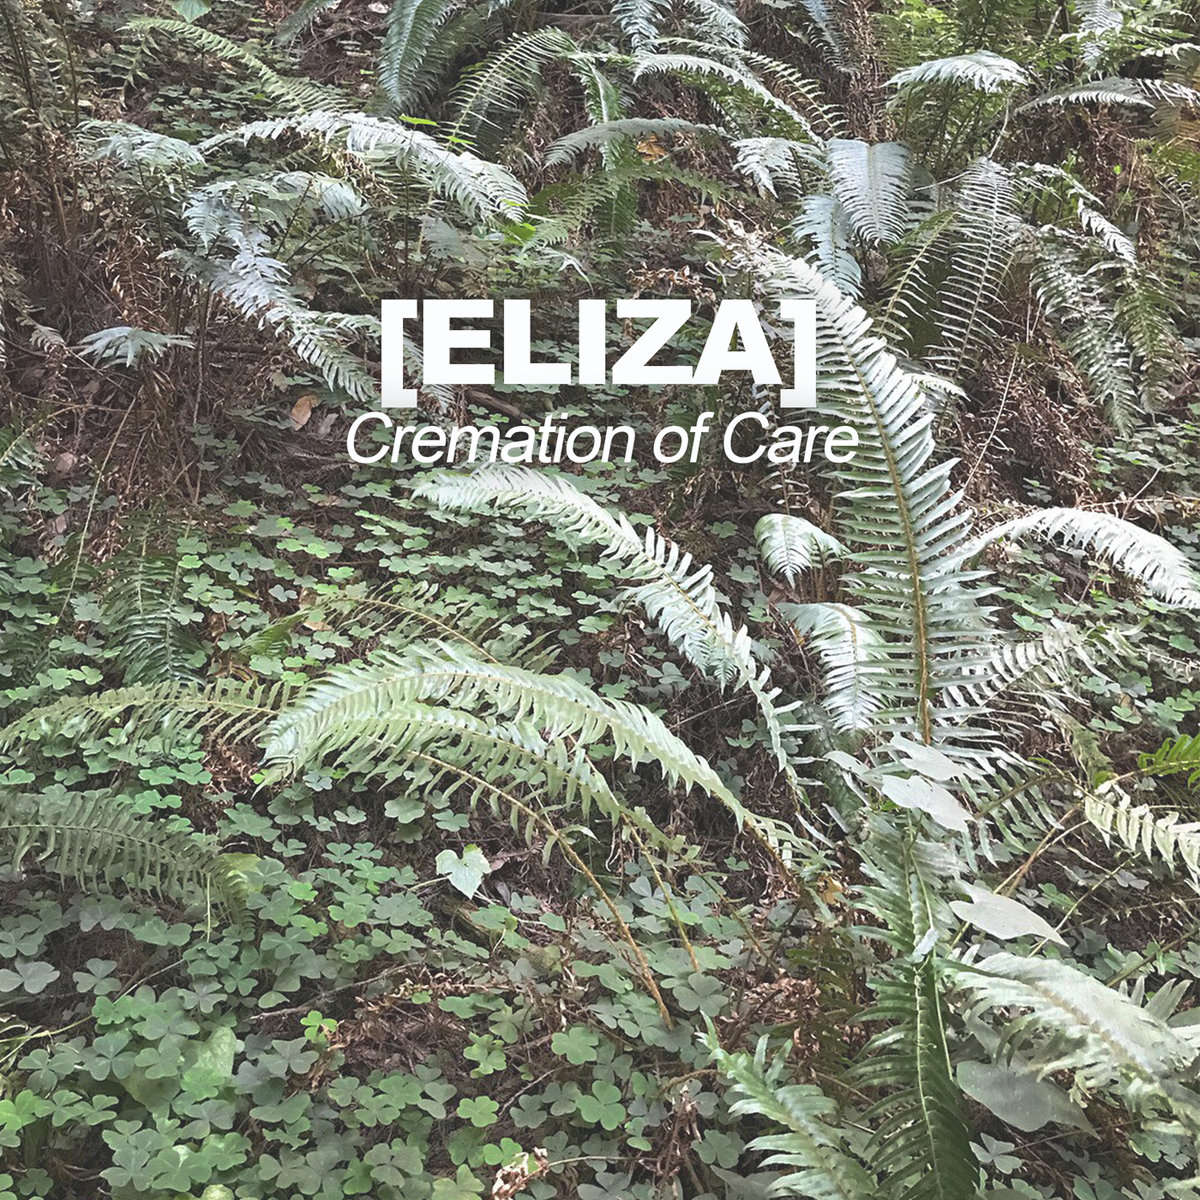 [Eliza] - Cremation of Care